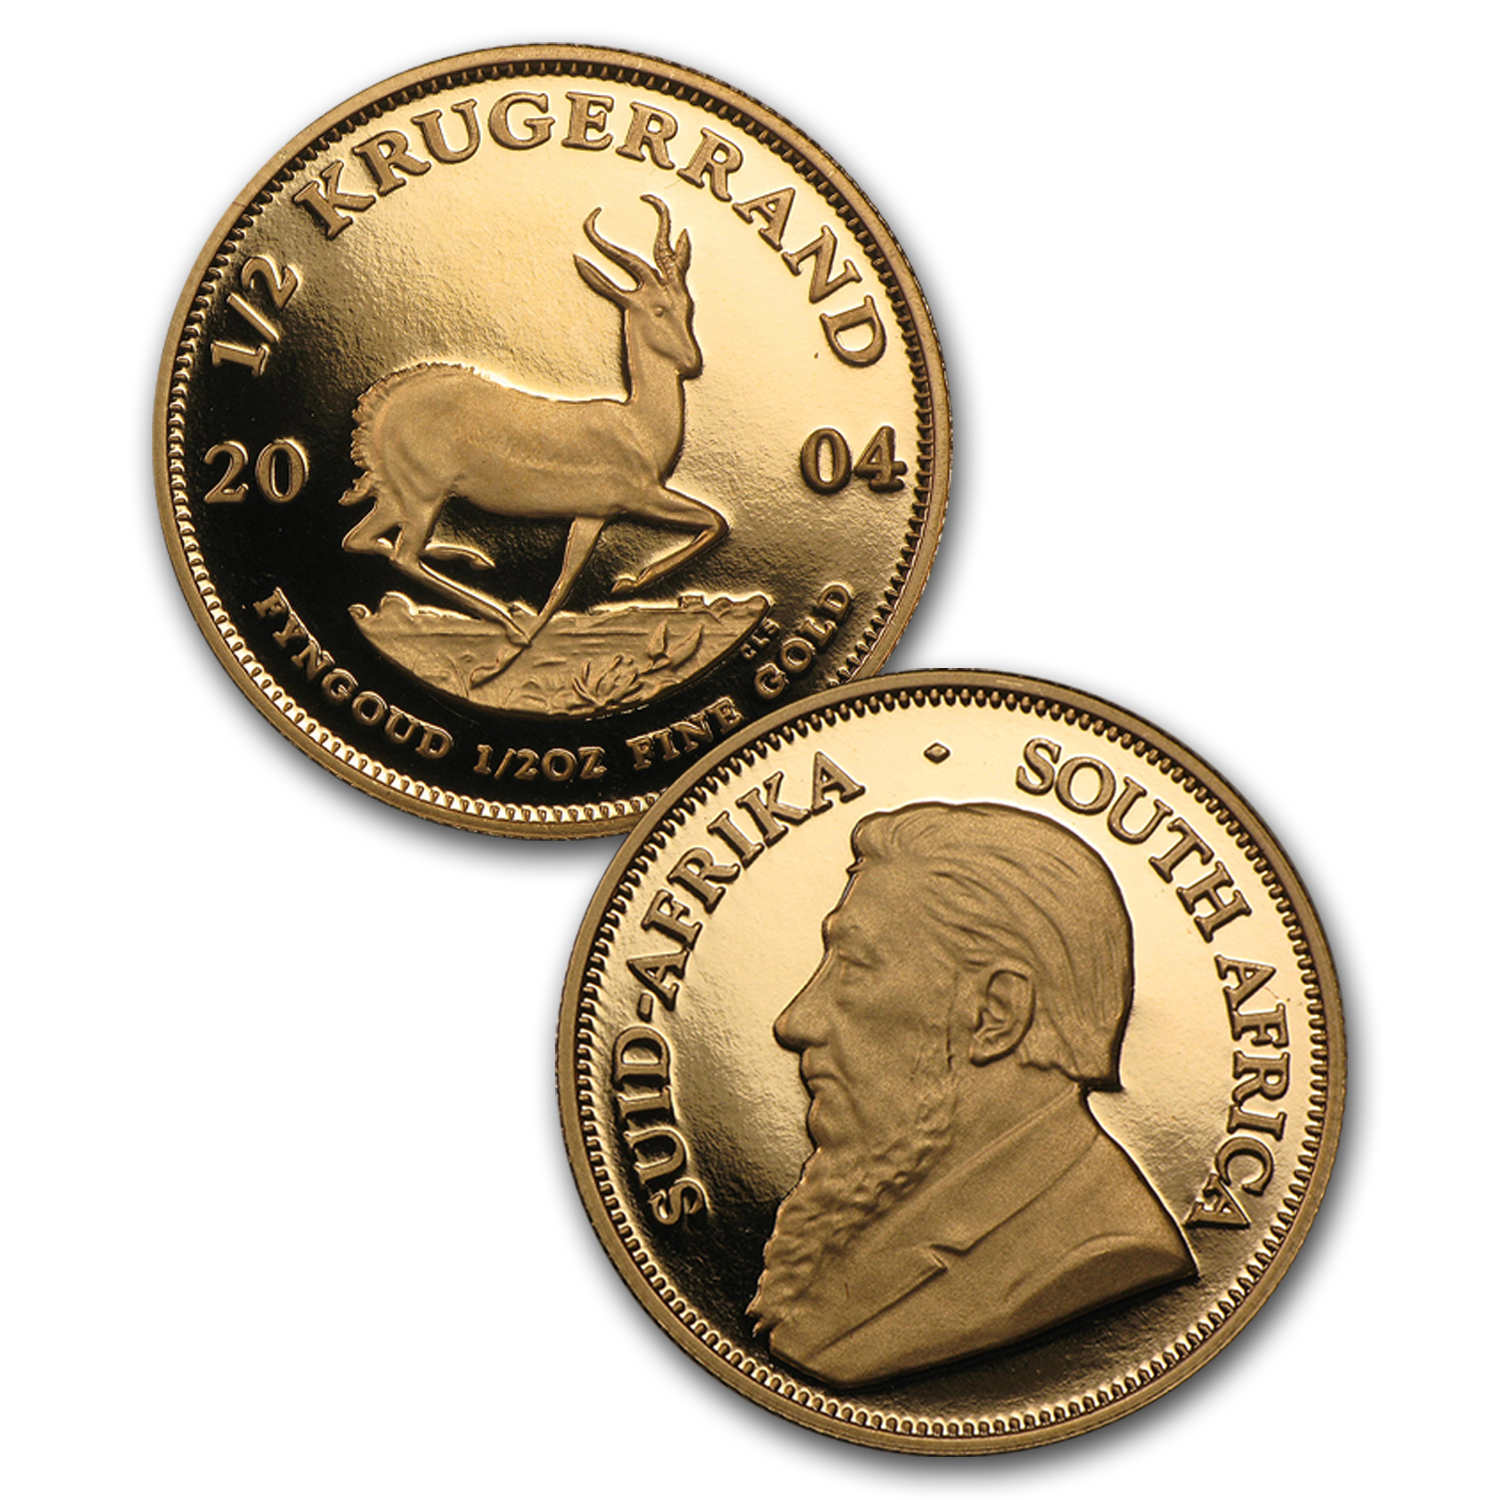 2004 5-Coin Gold South African Krugerrand Proof Set (Paul Kruger)